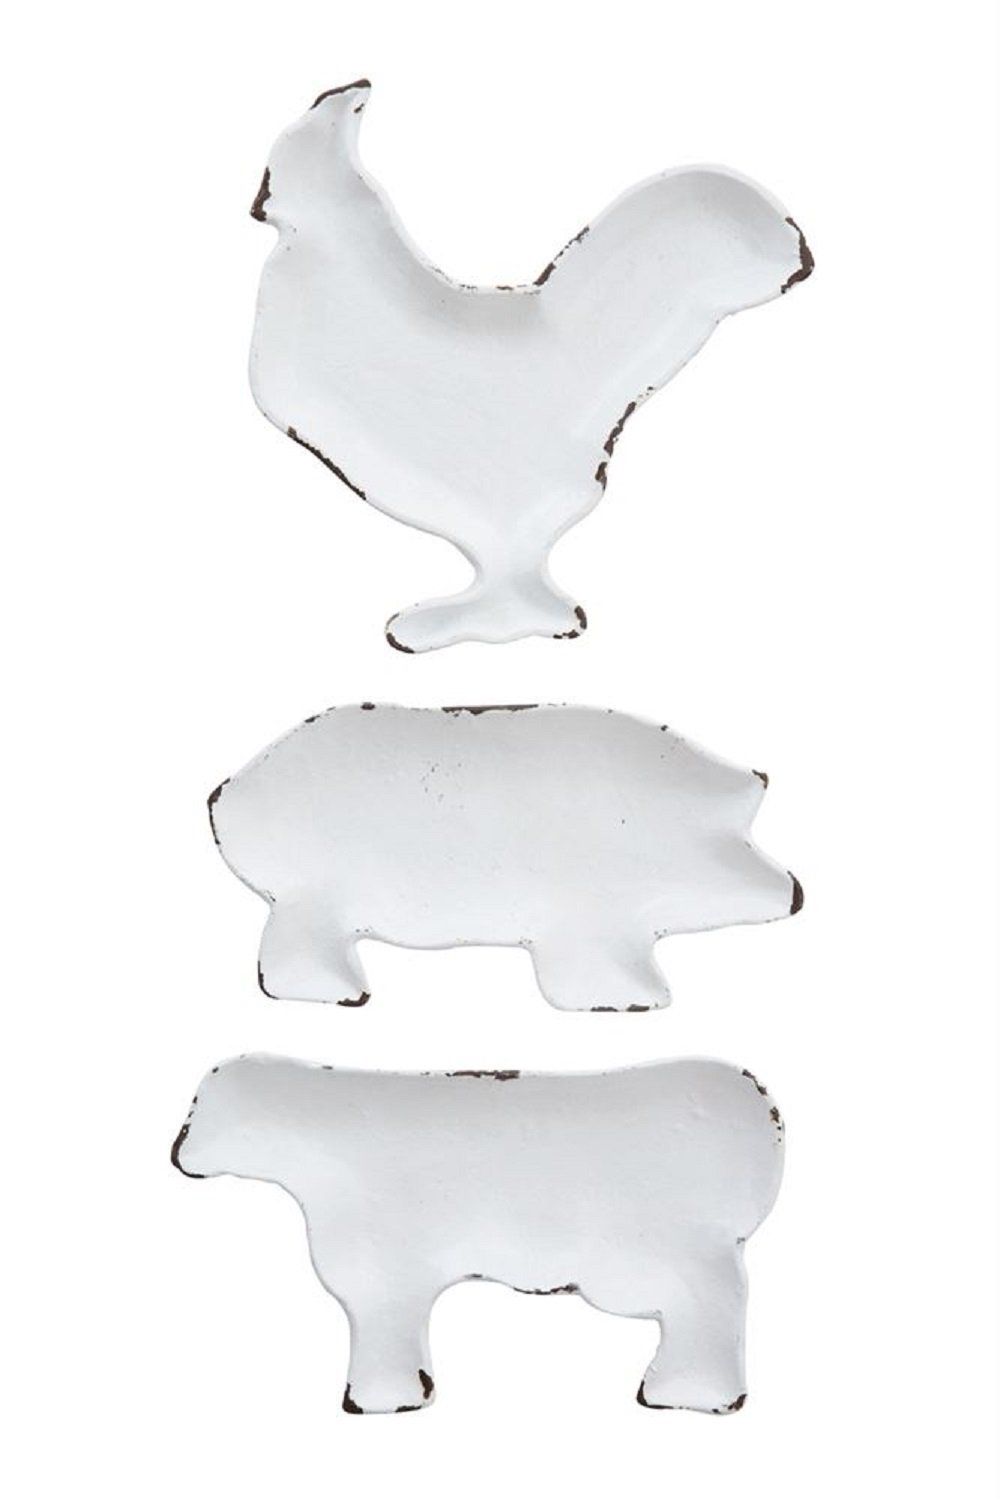 Decorative Cast Iron Farm Animal Dish, Distressed White, 3 Styles (Hangs or Sits) Chicken, Pig, Cow